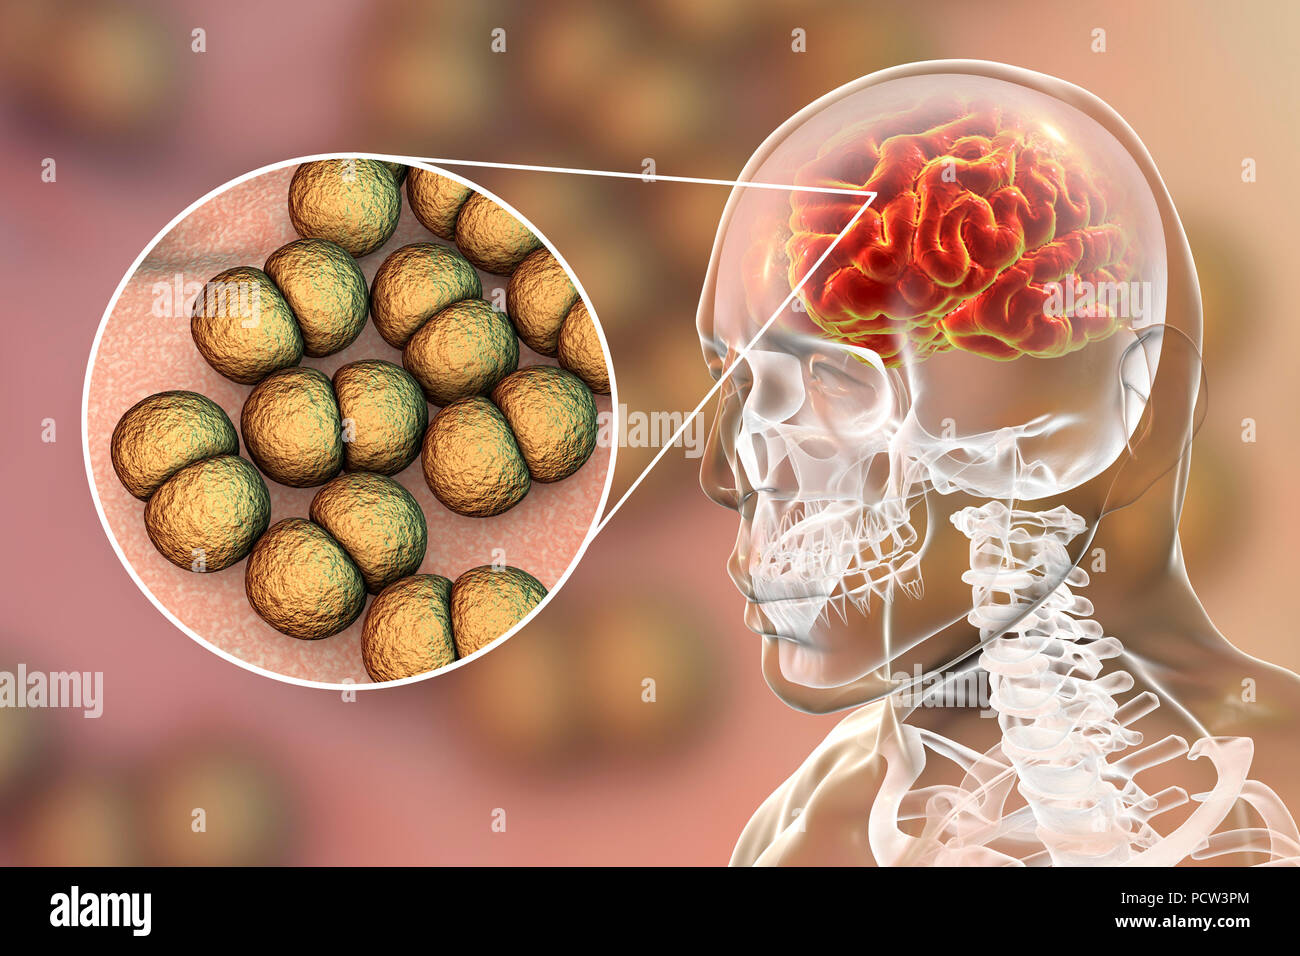 Neisseria meningitidis brain infection, computer illustration. N. meningitidis are gram-negative diplococci (spherical bacteria arranged in pairs), transmitted via the respiratory route. In most people they cause either asymptomatic infections or non-severe nasopharingitis, but can also cause severe meningitis and generalised infection (meningococcaemia), particularly in children. Their surface is covered with pilli which take part in attachment of bacteria to cells and surfaces. - Stock Image